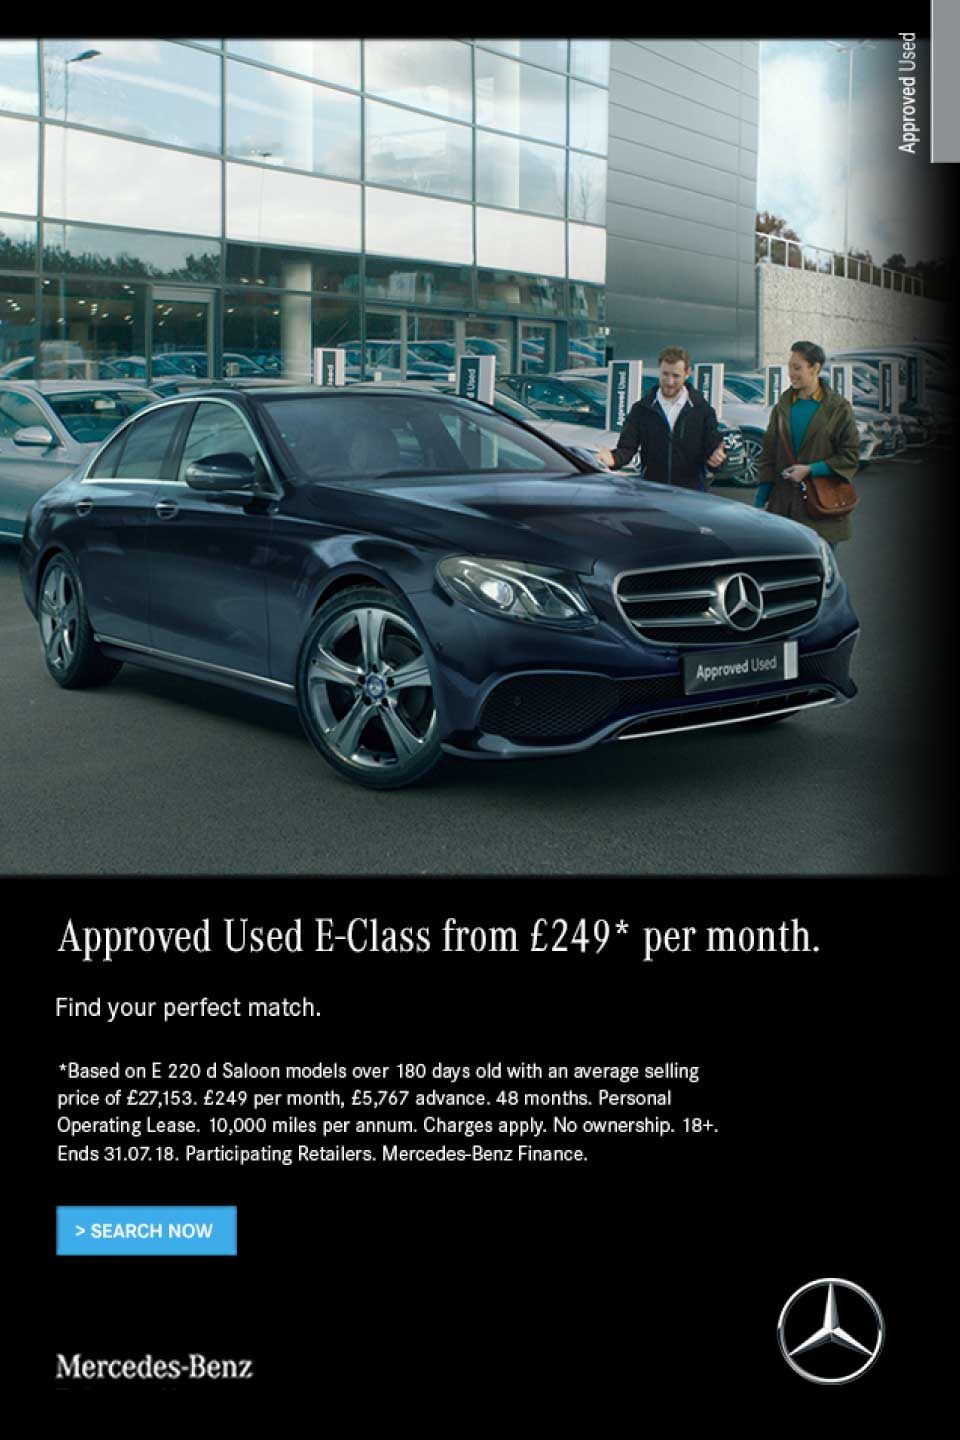 Mercedes-Benz E-Class Approved Used